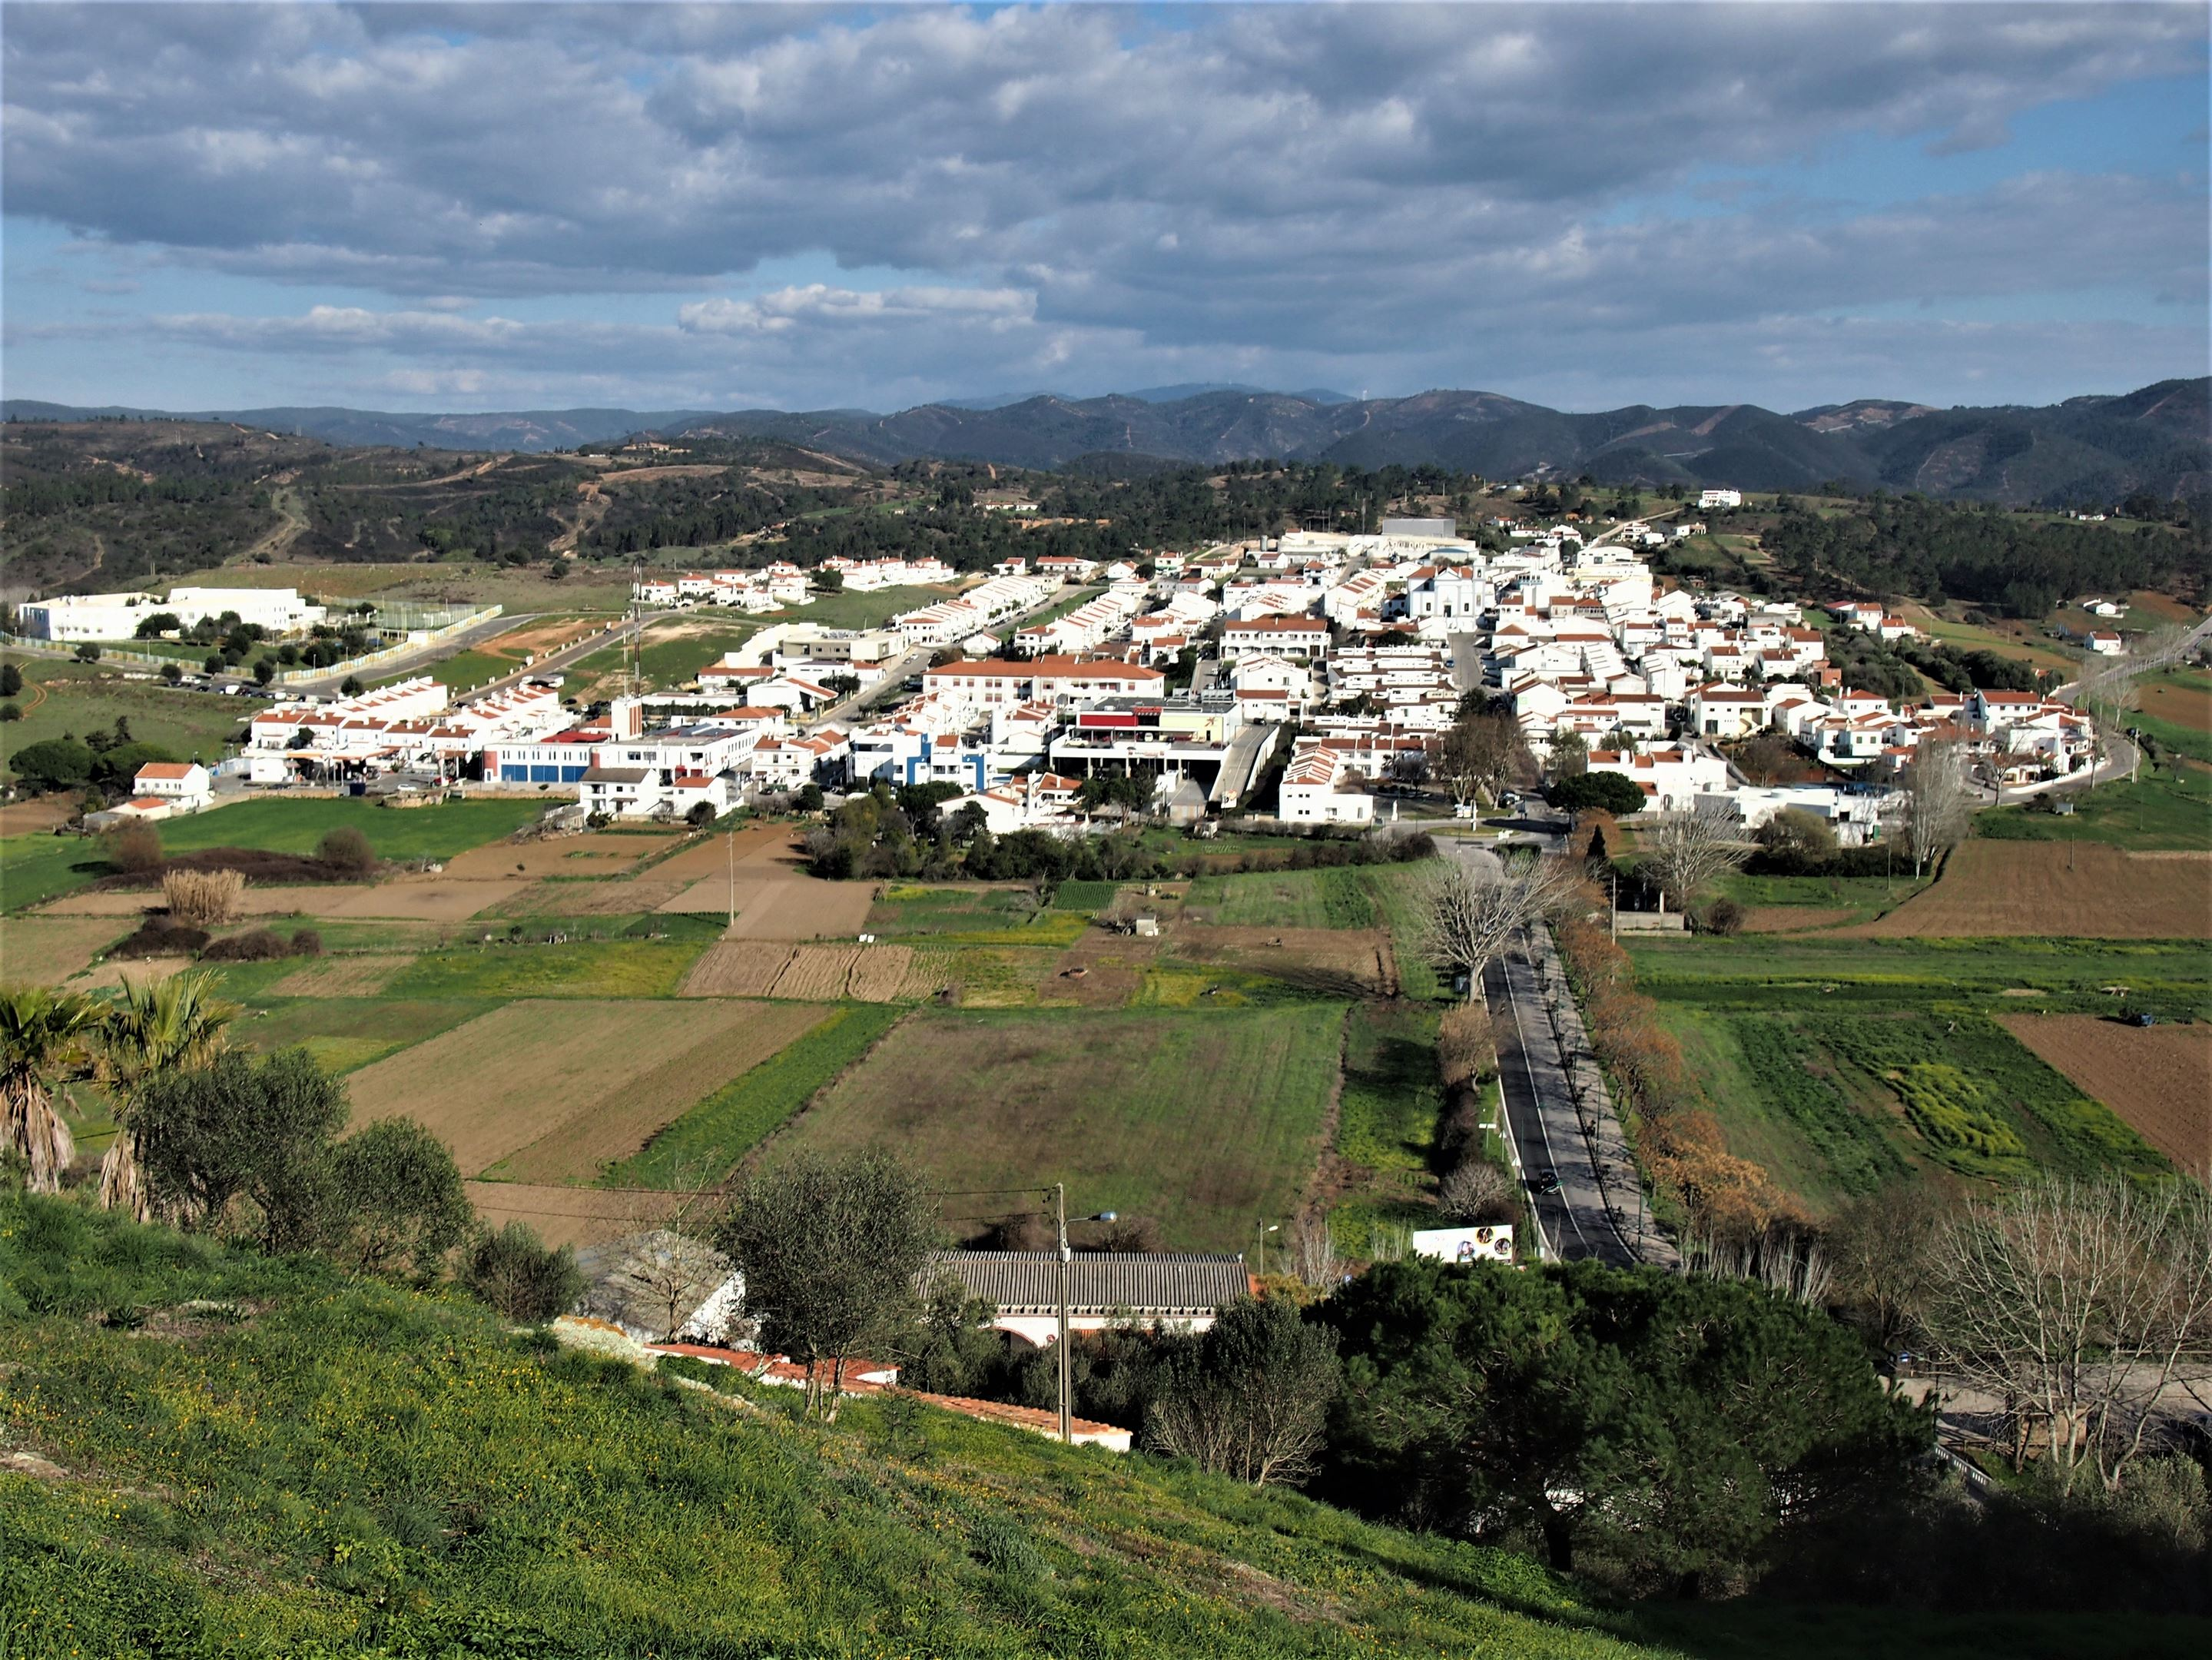 The 'new town' of Aljezur built to relocate the residents following an outbreak of malaria in the 18th Century